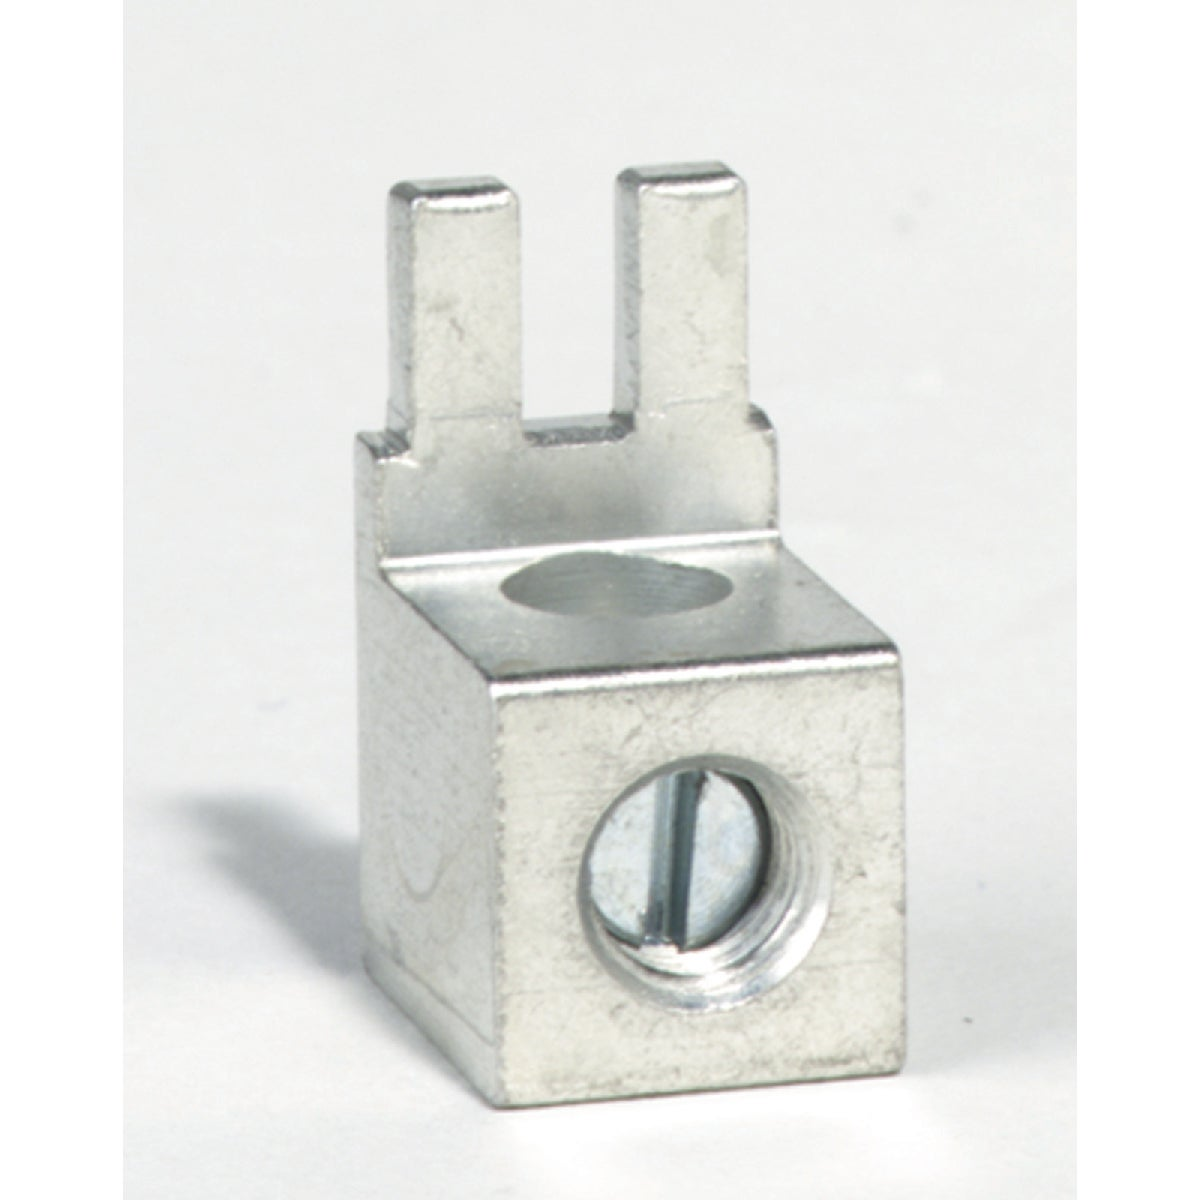 100A NEUTRAL LUG - QO70ANCP by Square D Co